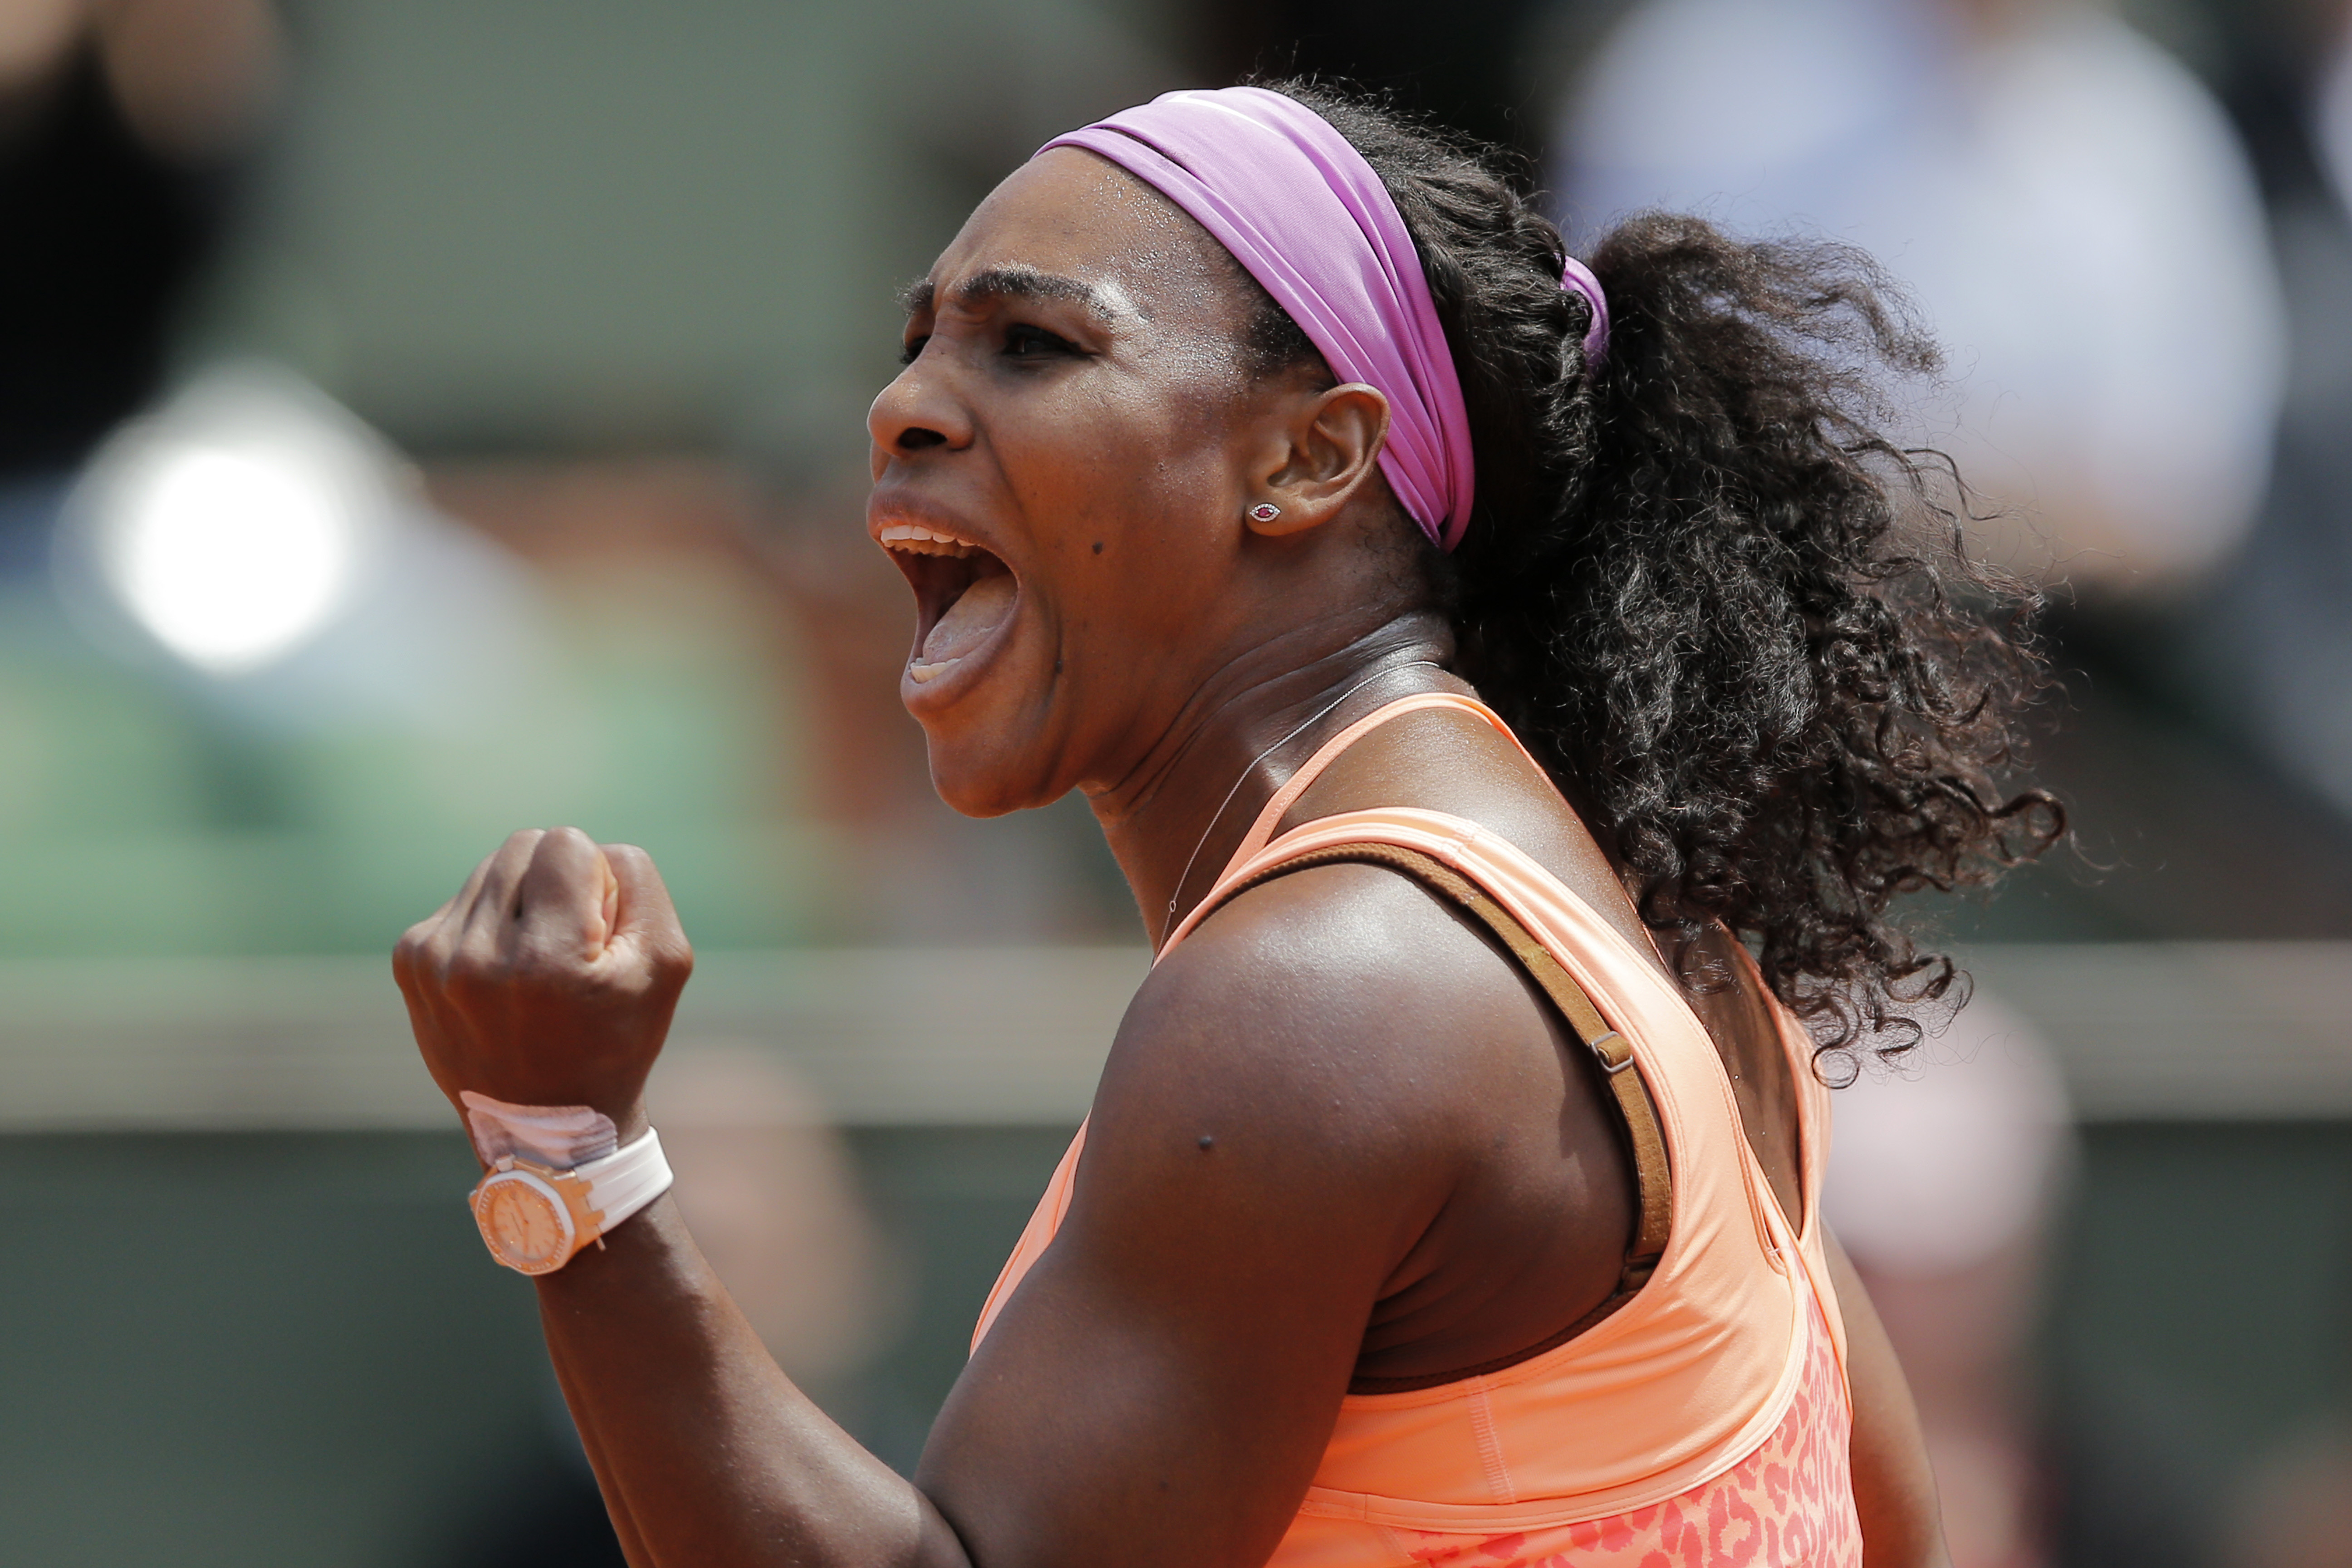 Serena Williams of the U.S. clenches her fist after scoring a point in the quarterfinal match of the French Open tennis tournament against Italy's Sara Errani at the Roland Garros stadium, in Paris, France, Wednesday, June 3, 2015. (AP Photo/Christophe En